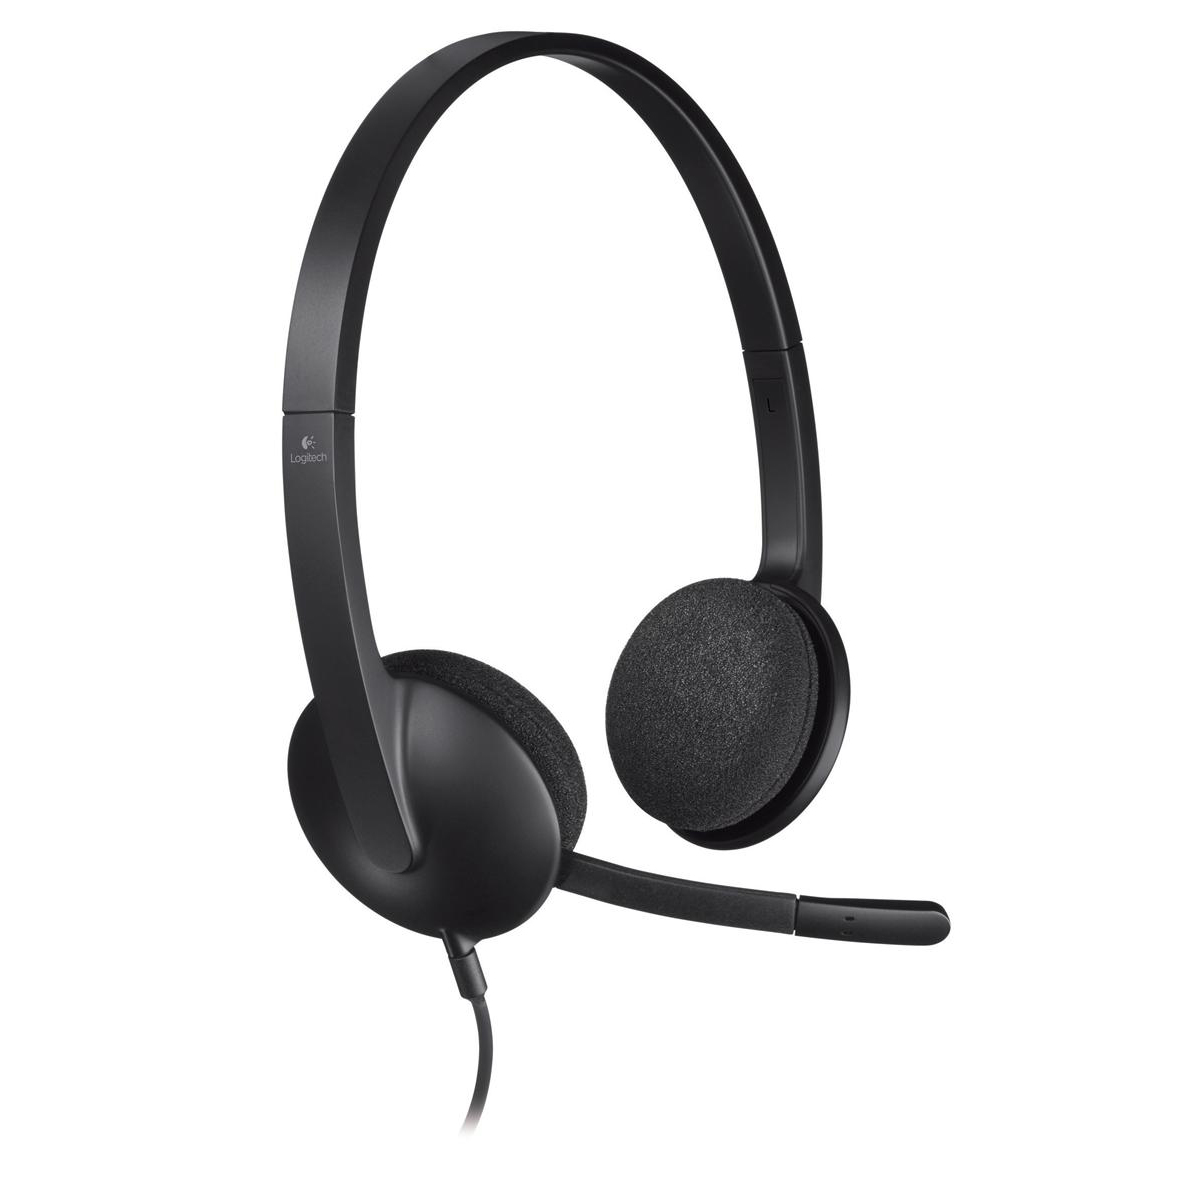 Headphones Logitech H340 Headset USB Lightweight with Noise-cancelling Microphone Ref 981-000475